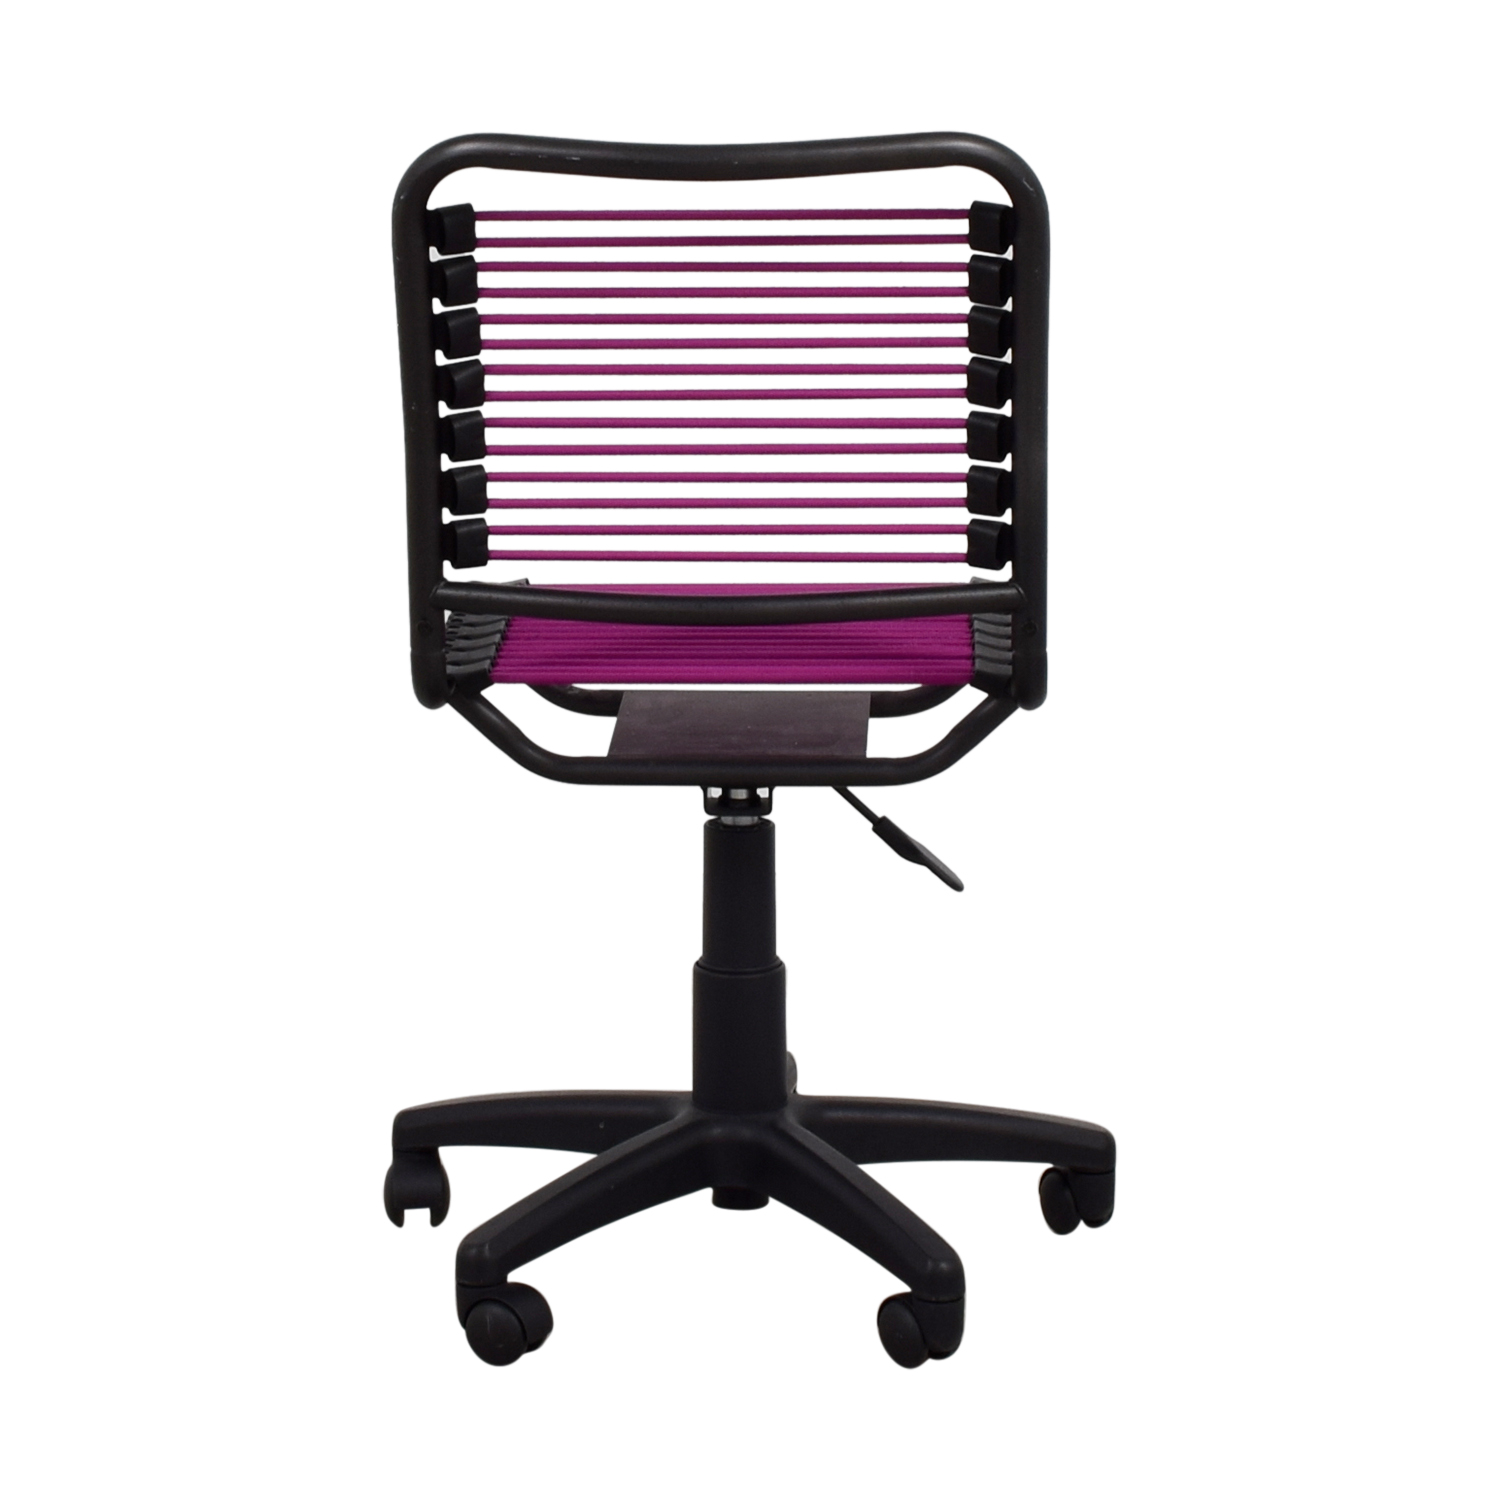 Chair On Wheels 86 Off The Container Store Container Store Magenta And Black Chair On Wheels Chairs